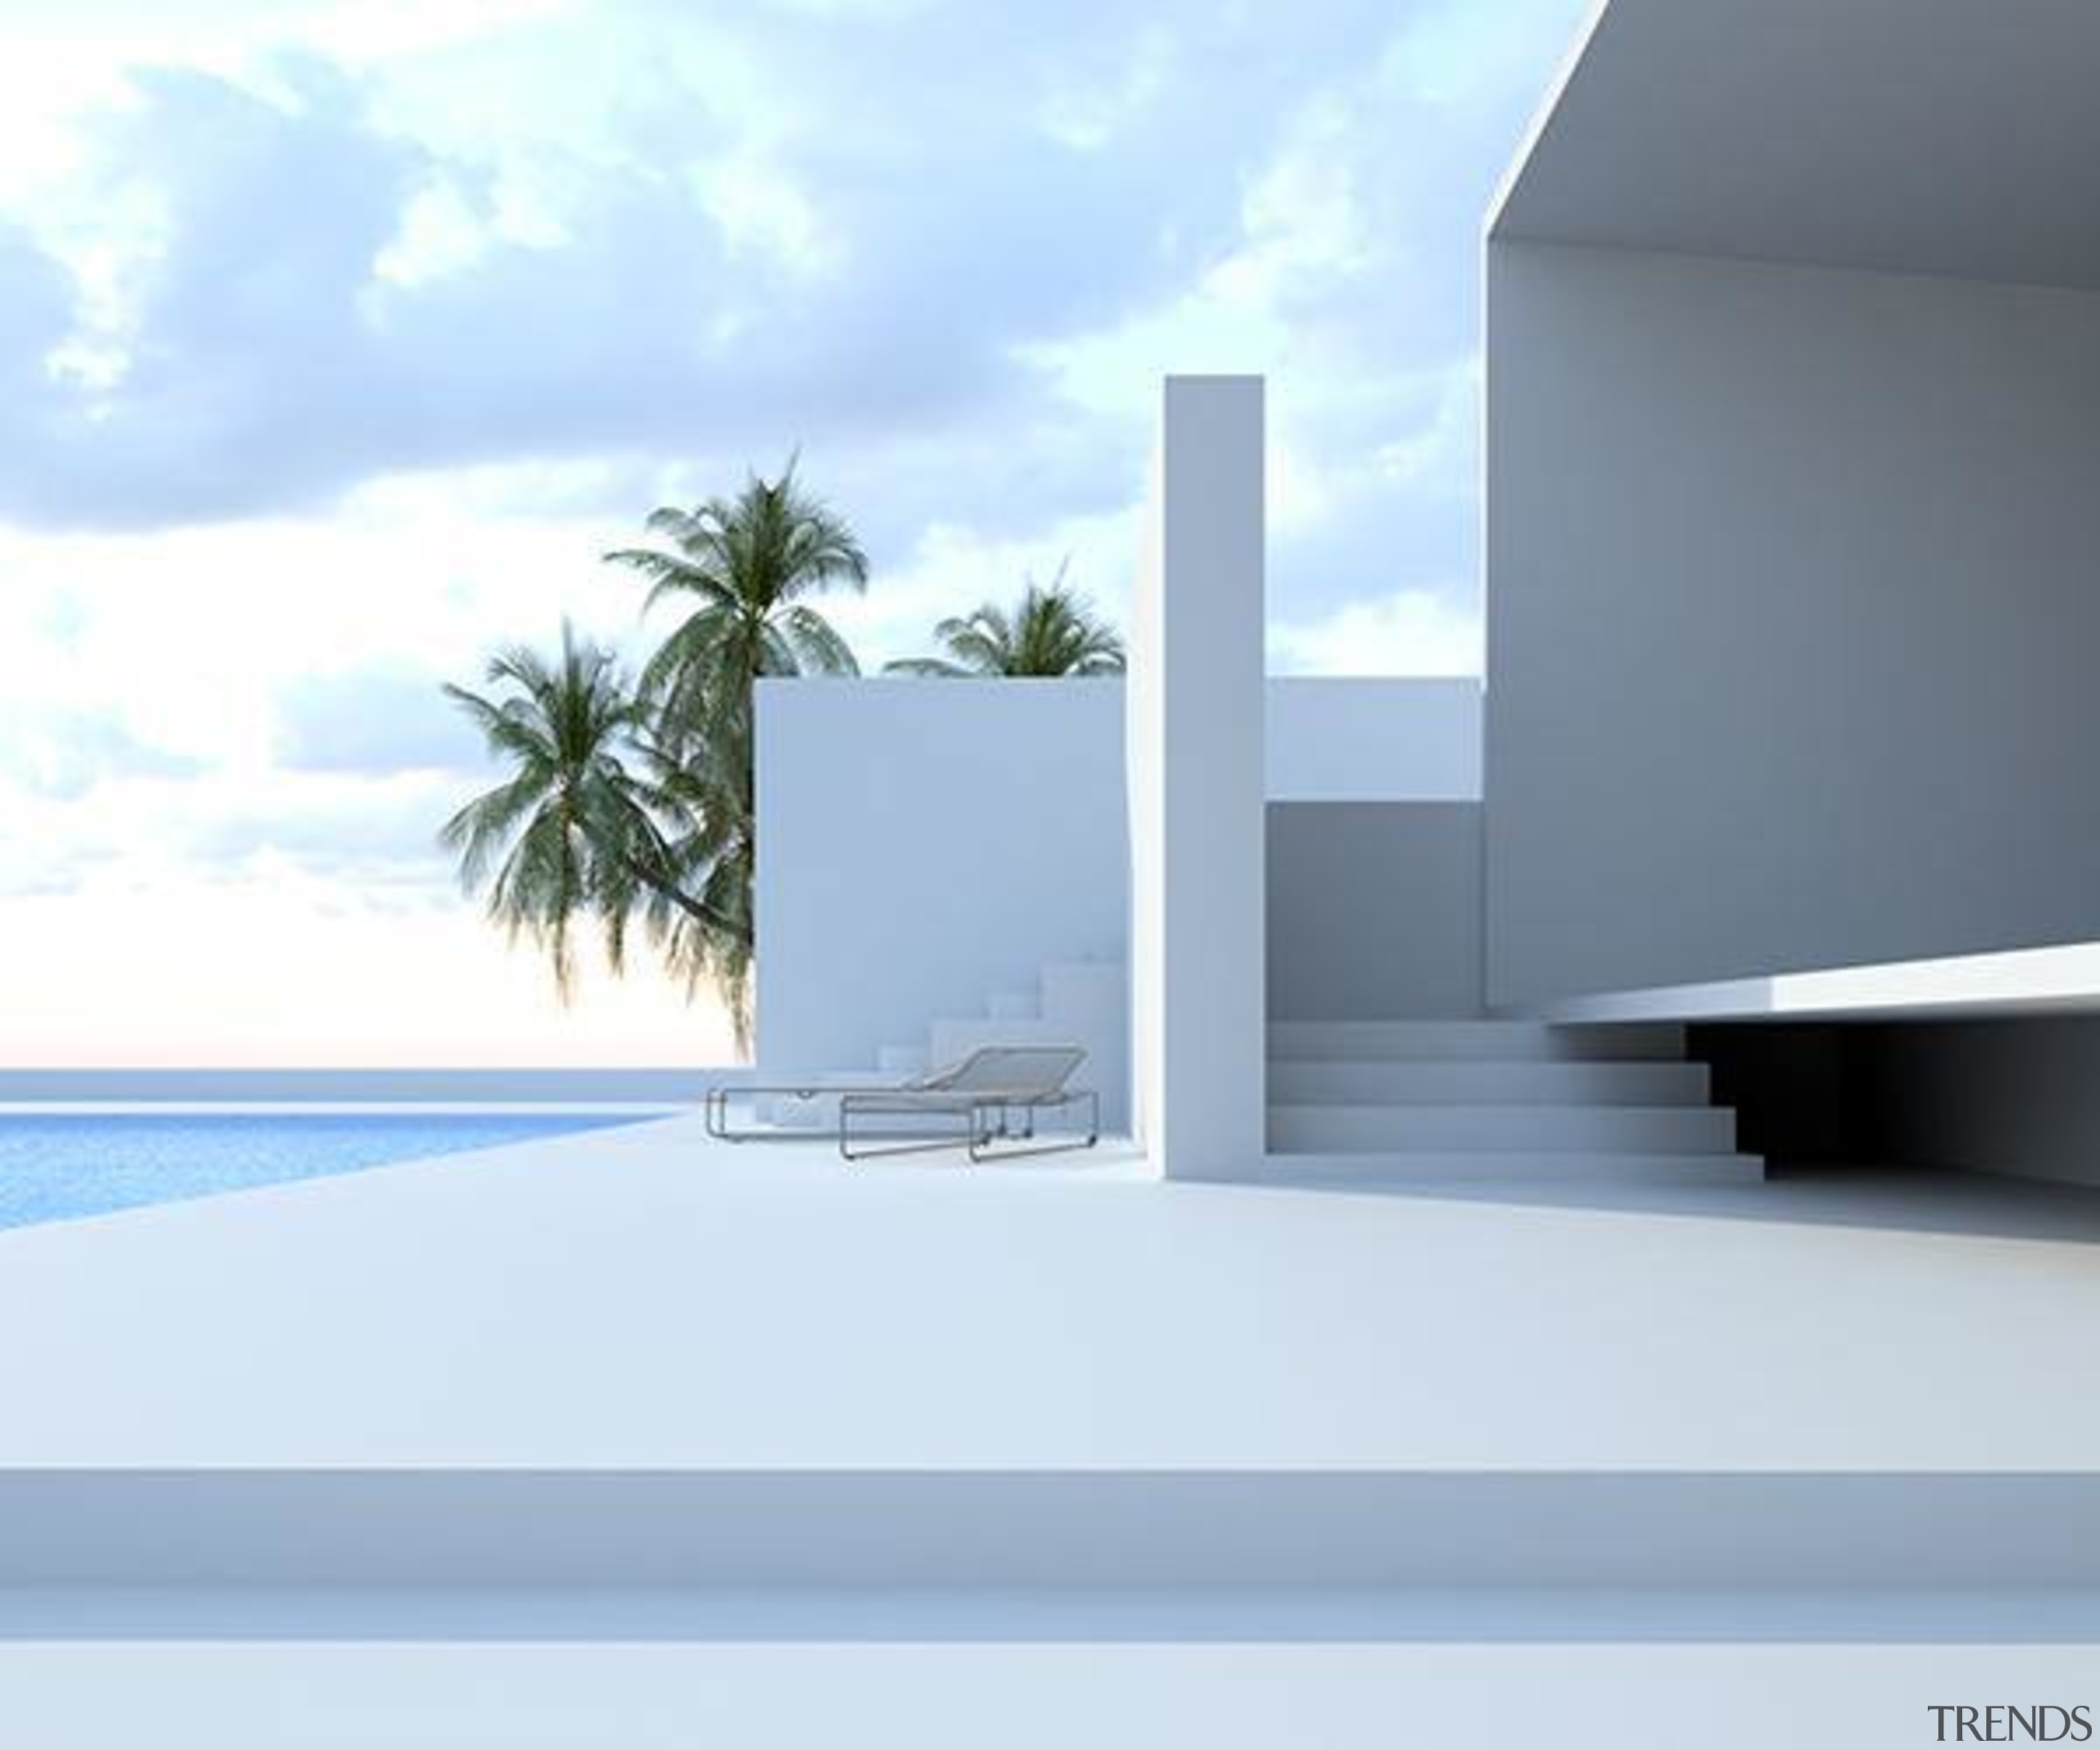 All white exteriors give a Mediterranean feel to architecture, home, house, product design, property, sky, water, white, teal